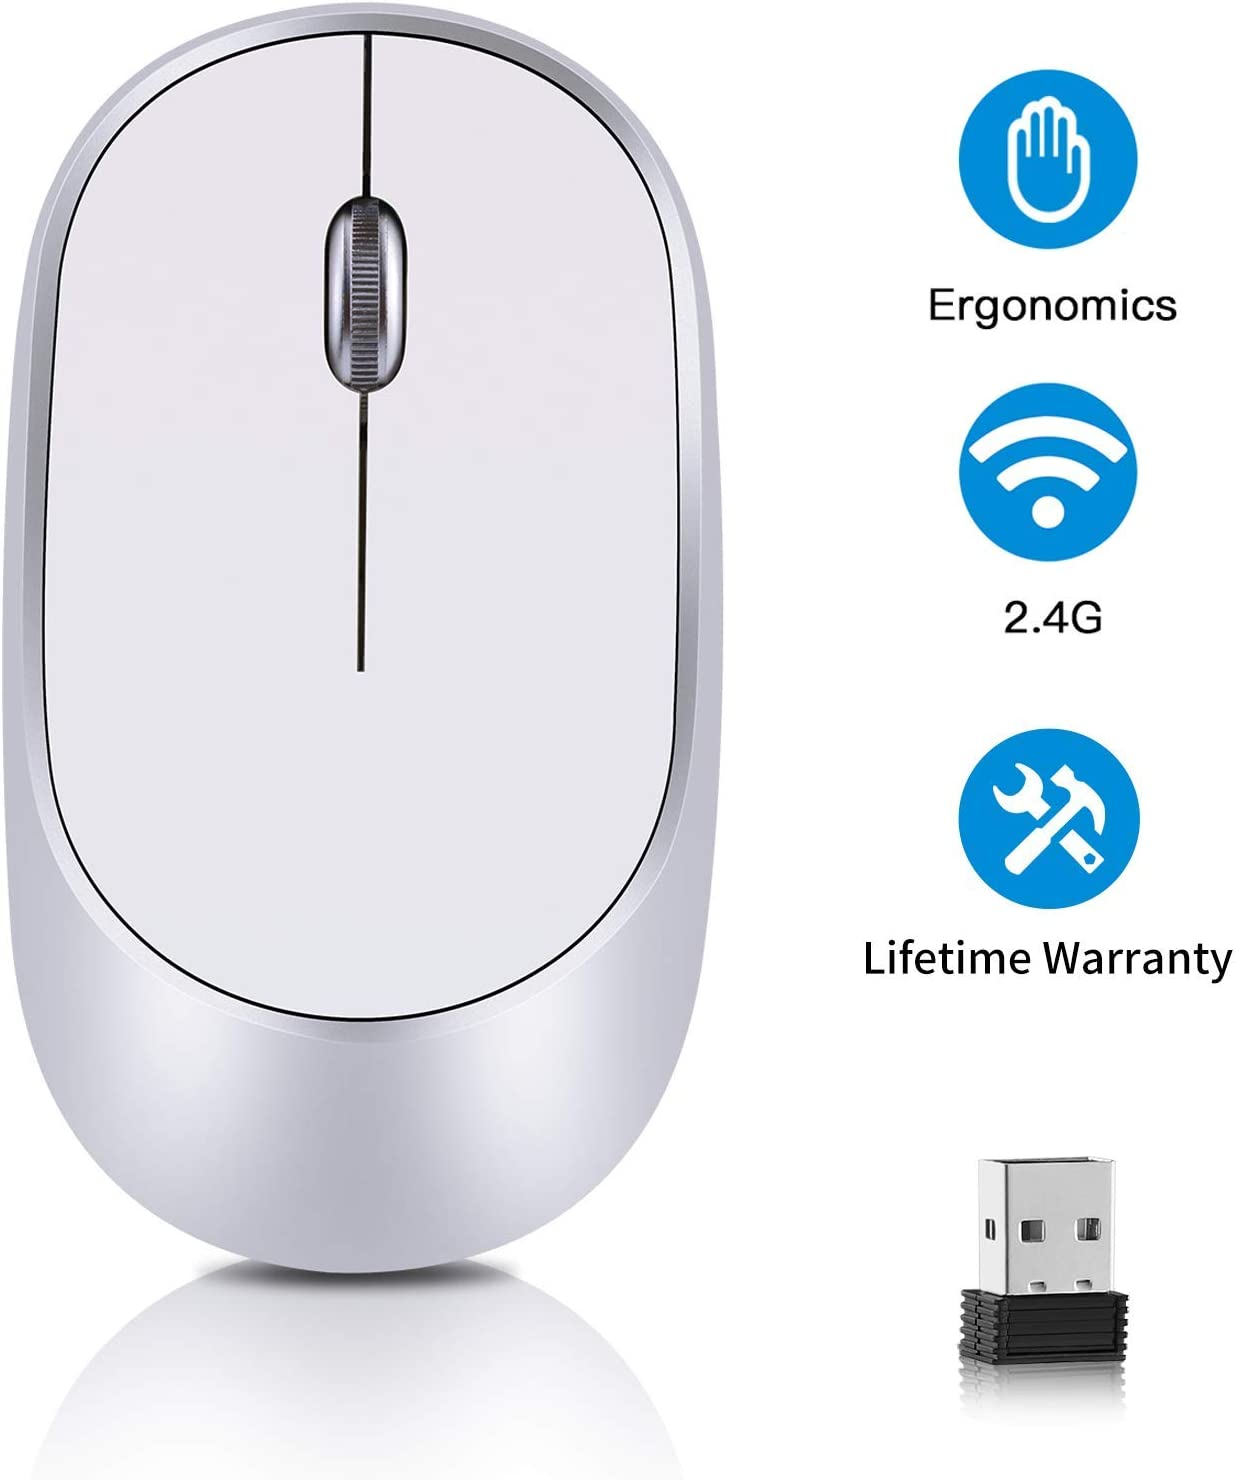 Computer Wireless Mouse, 2.4G Slim Portable Laptop Mice Optical Mouse with USB Nano Receiver DPI 1200- Fit Your Hand Nicely, for Laptop, MacBook, Desktop, PC, Notebook - Silver